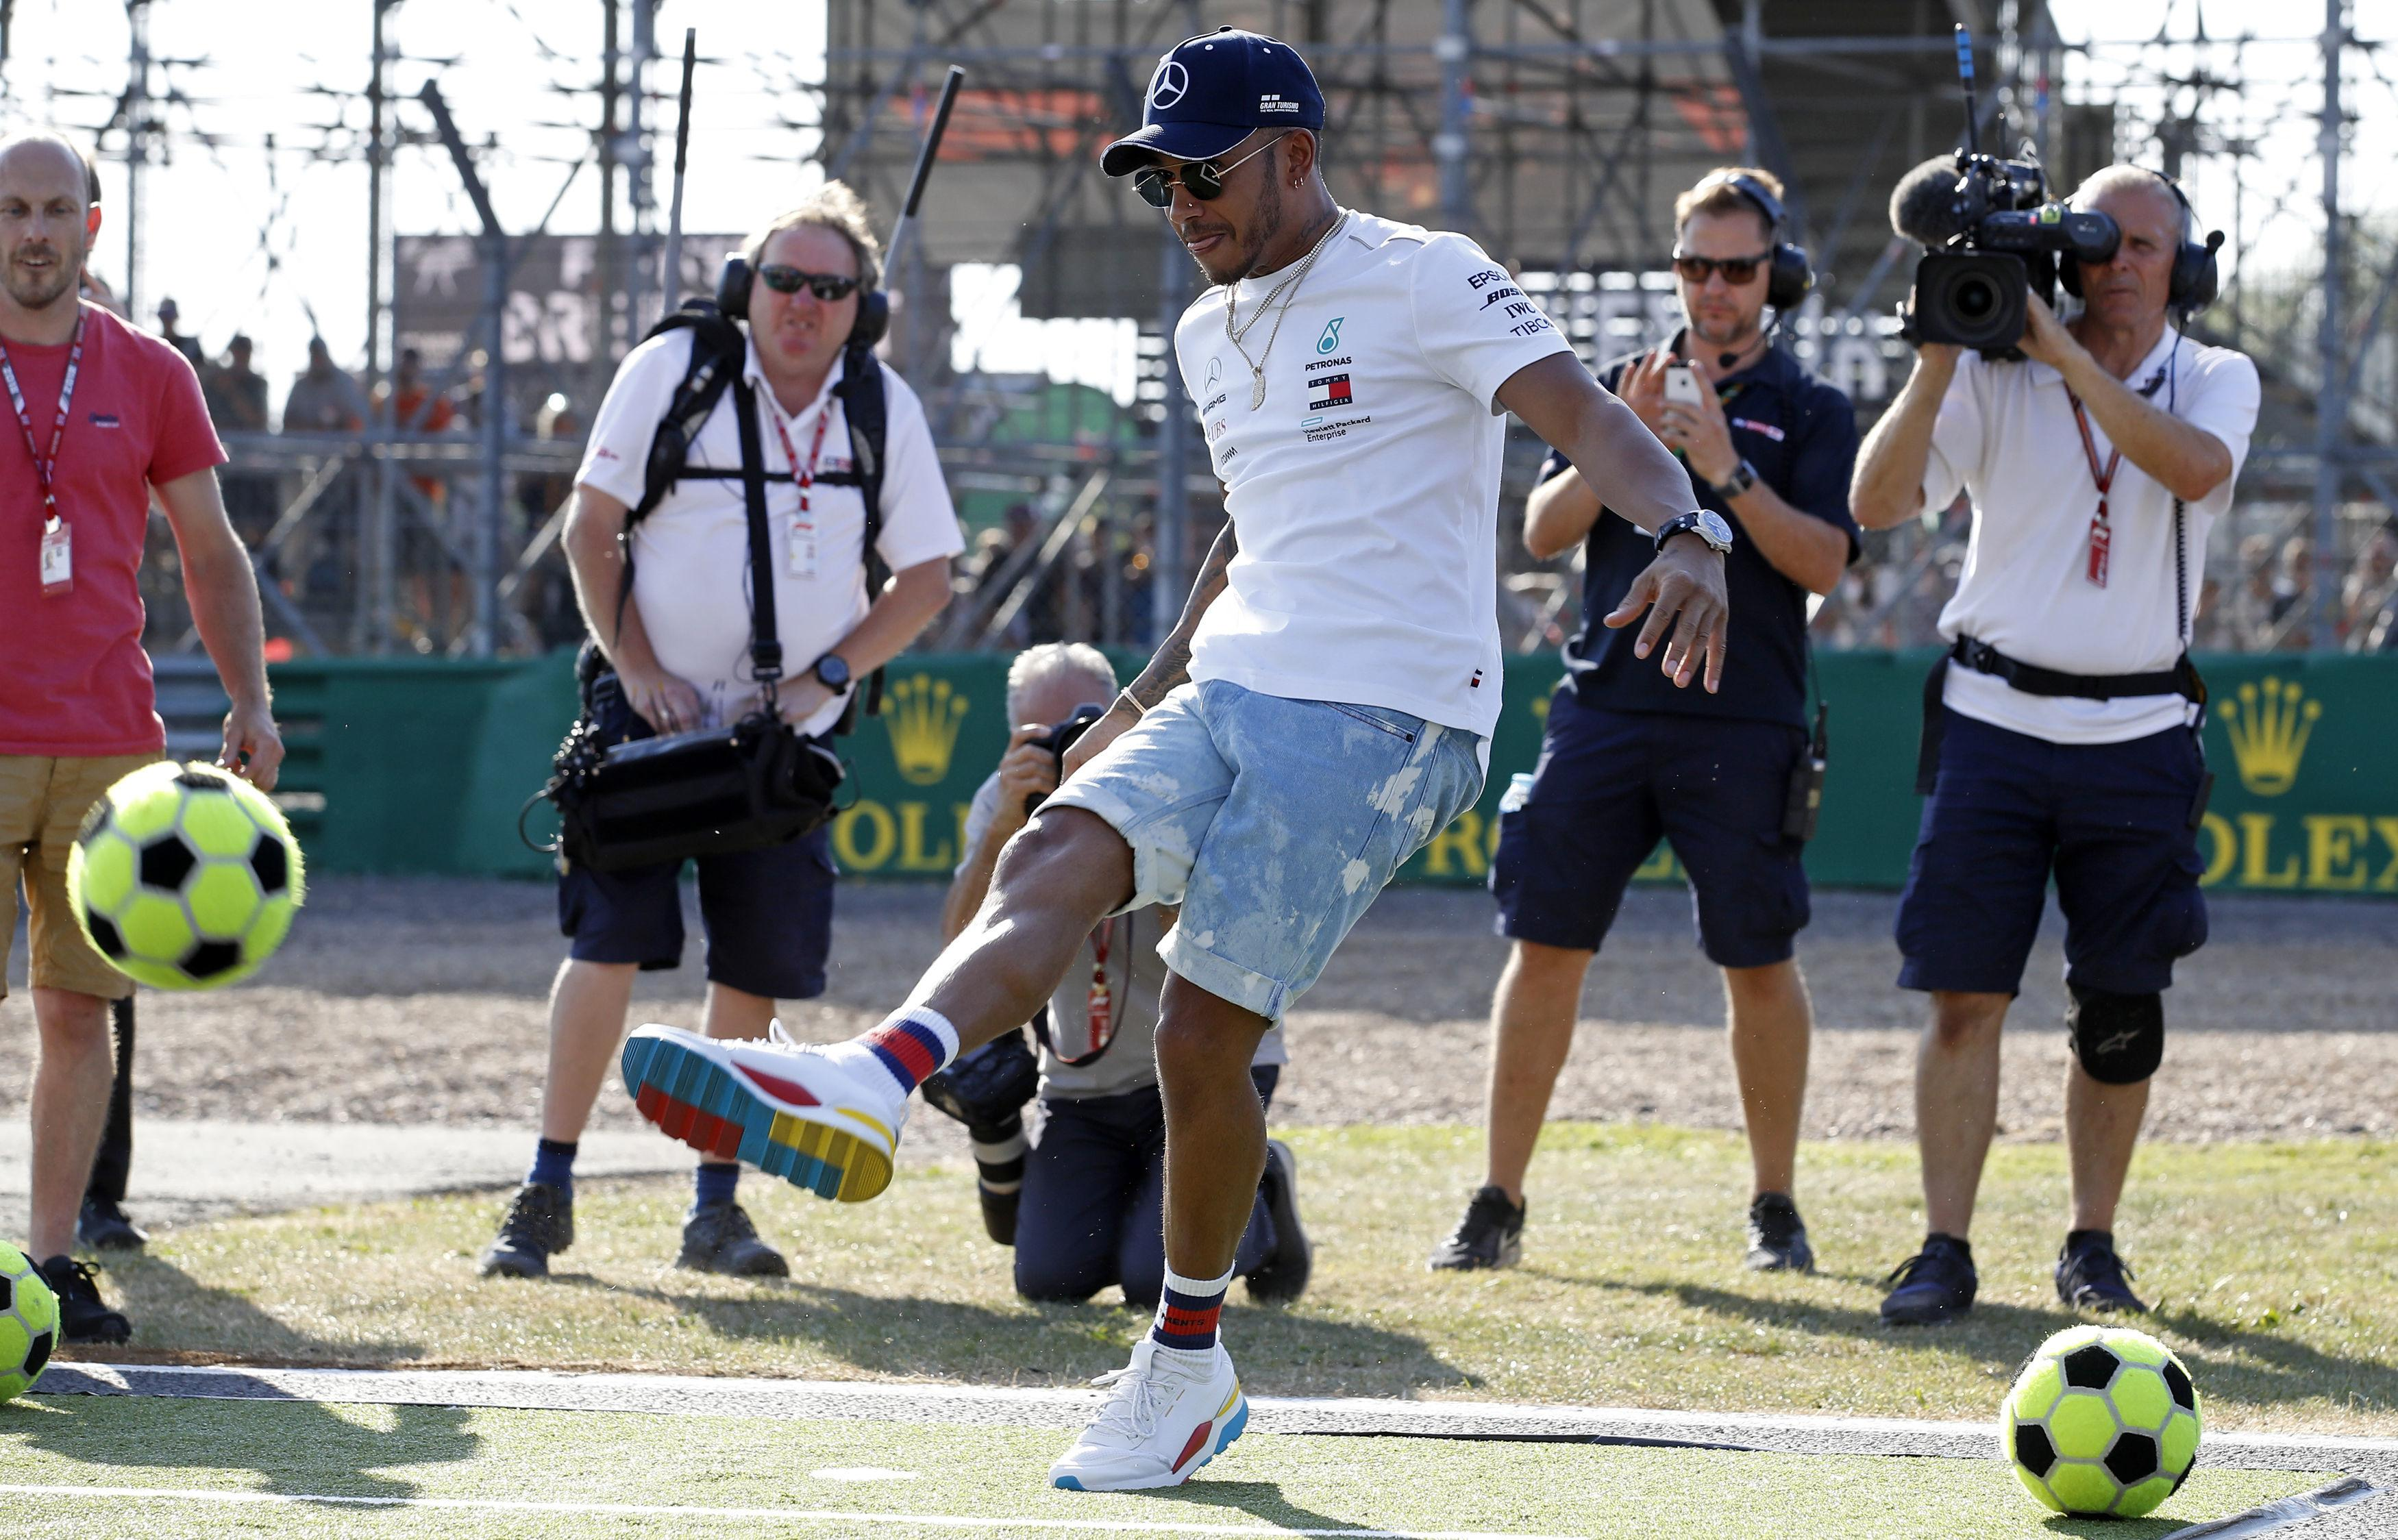 Lewis Hamilton shows off his skills today